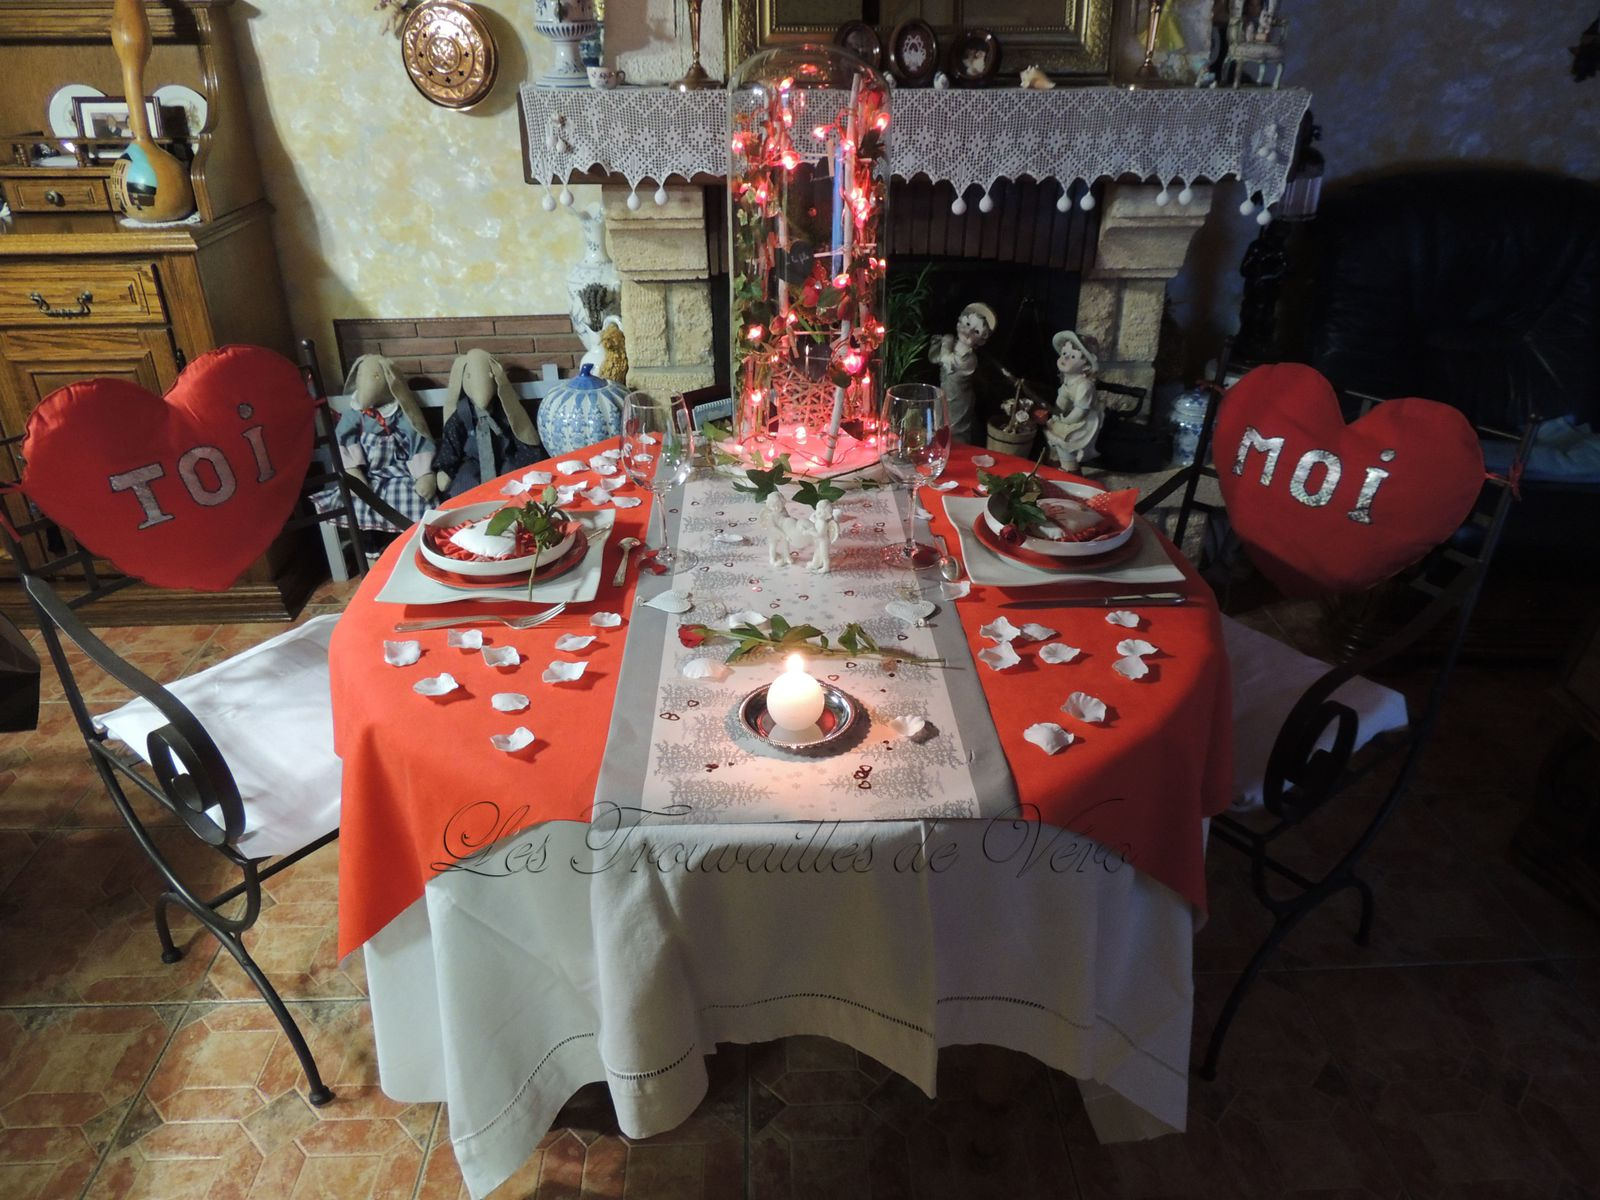 Deco table st valentin design de maison for Deco table st valentin